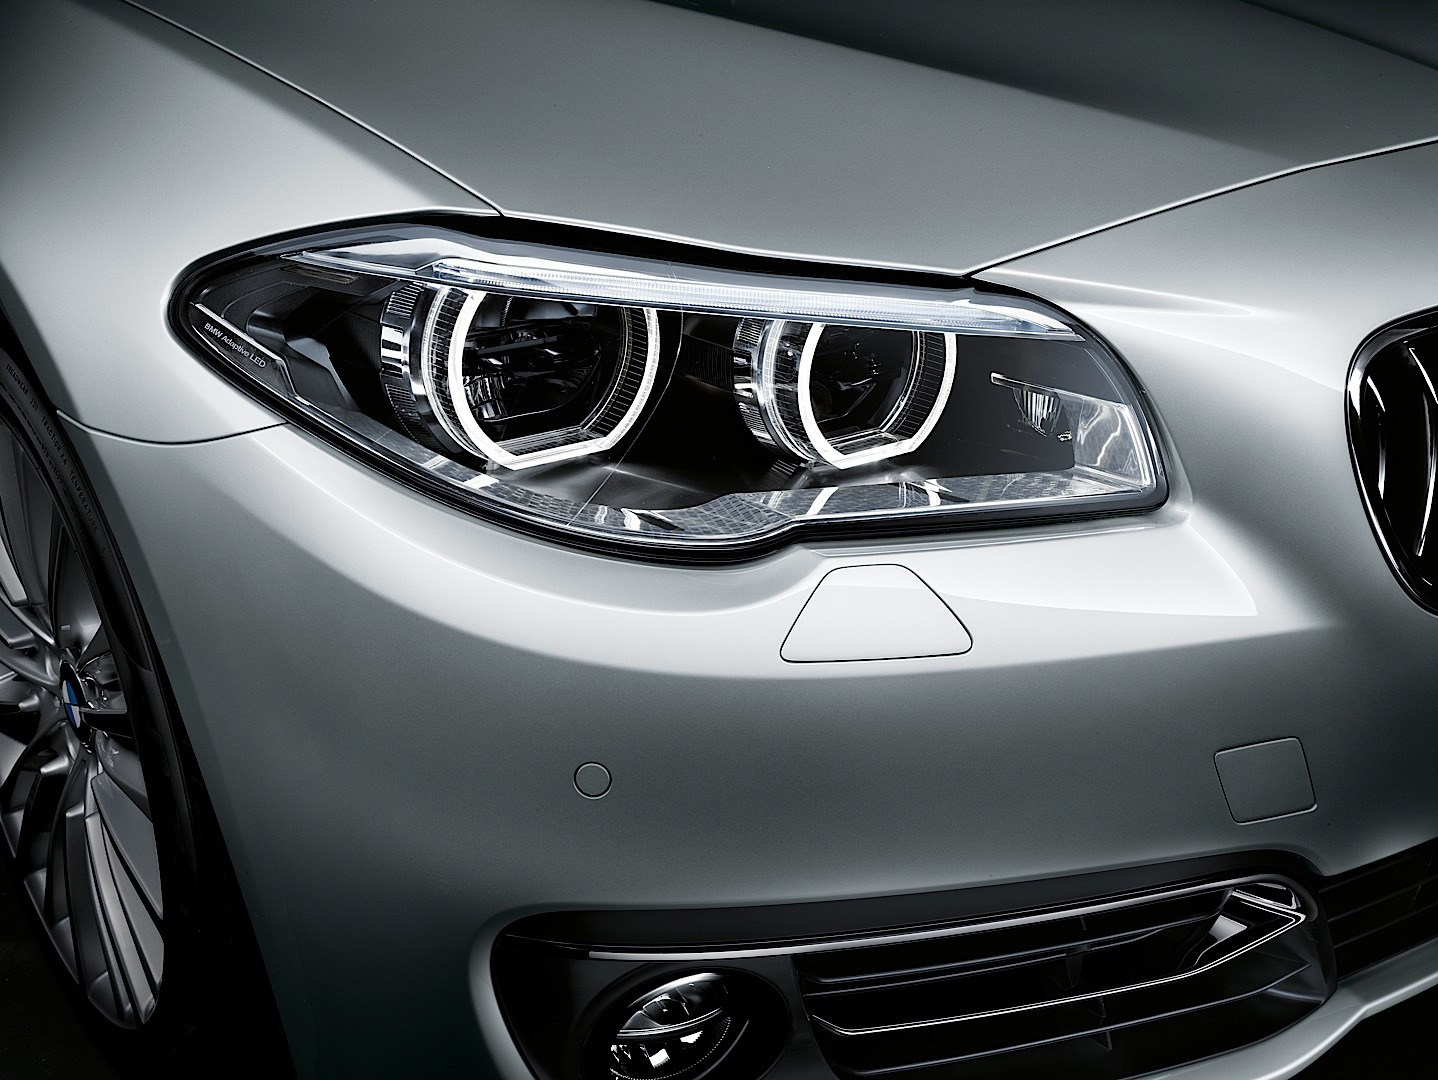 2014 Bmw F10 5 Series Officially Unveiled Autoevolution